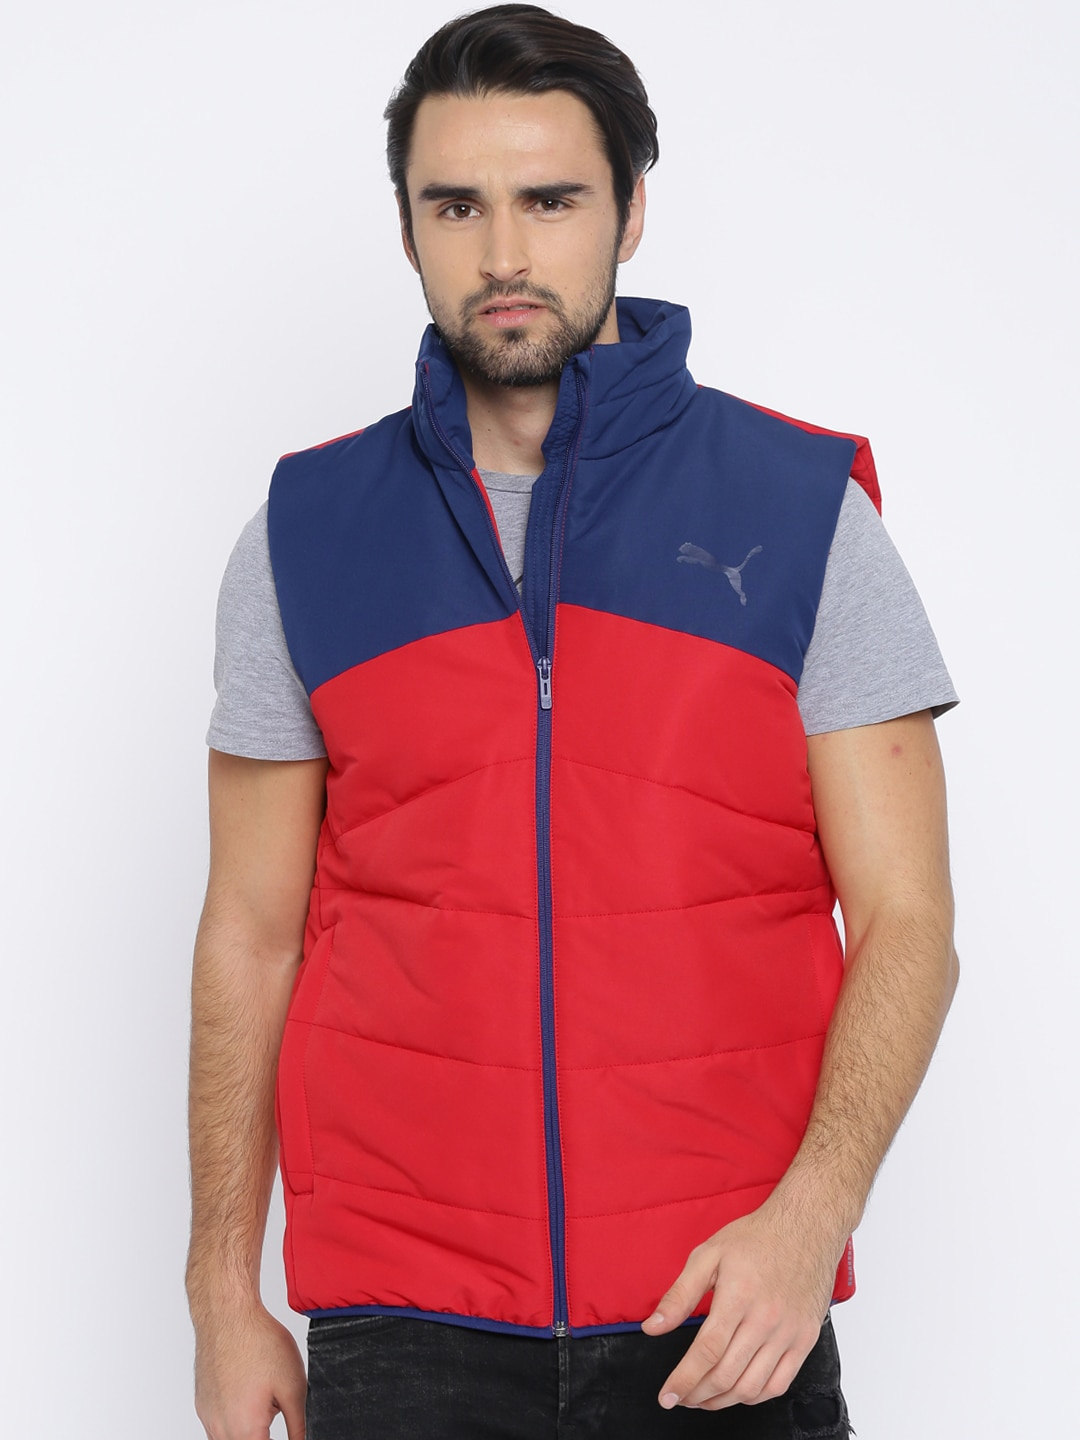 f04cc0ab59b2 Sleeveless Men Puma Jackets - Buy Sleeveless Men Puma Jackets online in  India